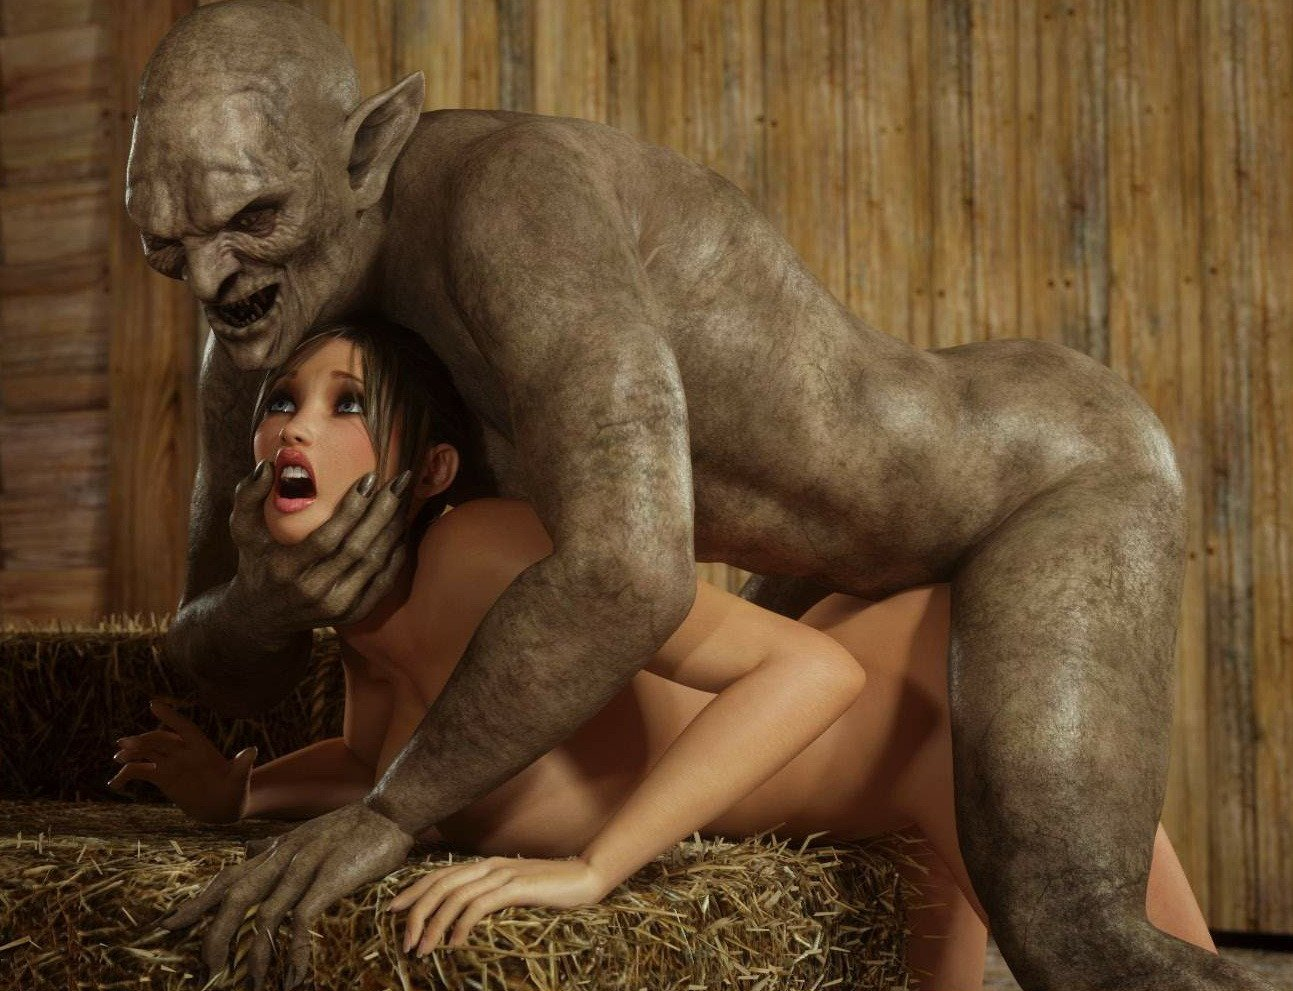 Sex with monsters 7